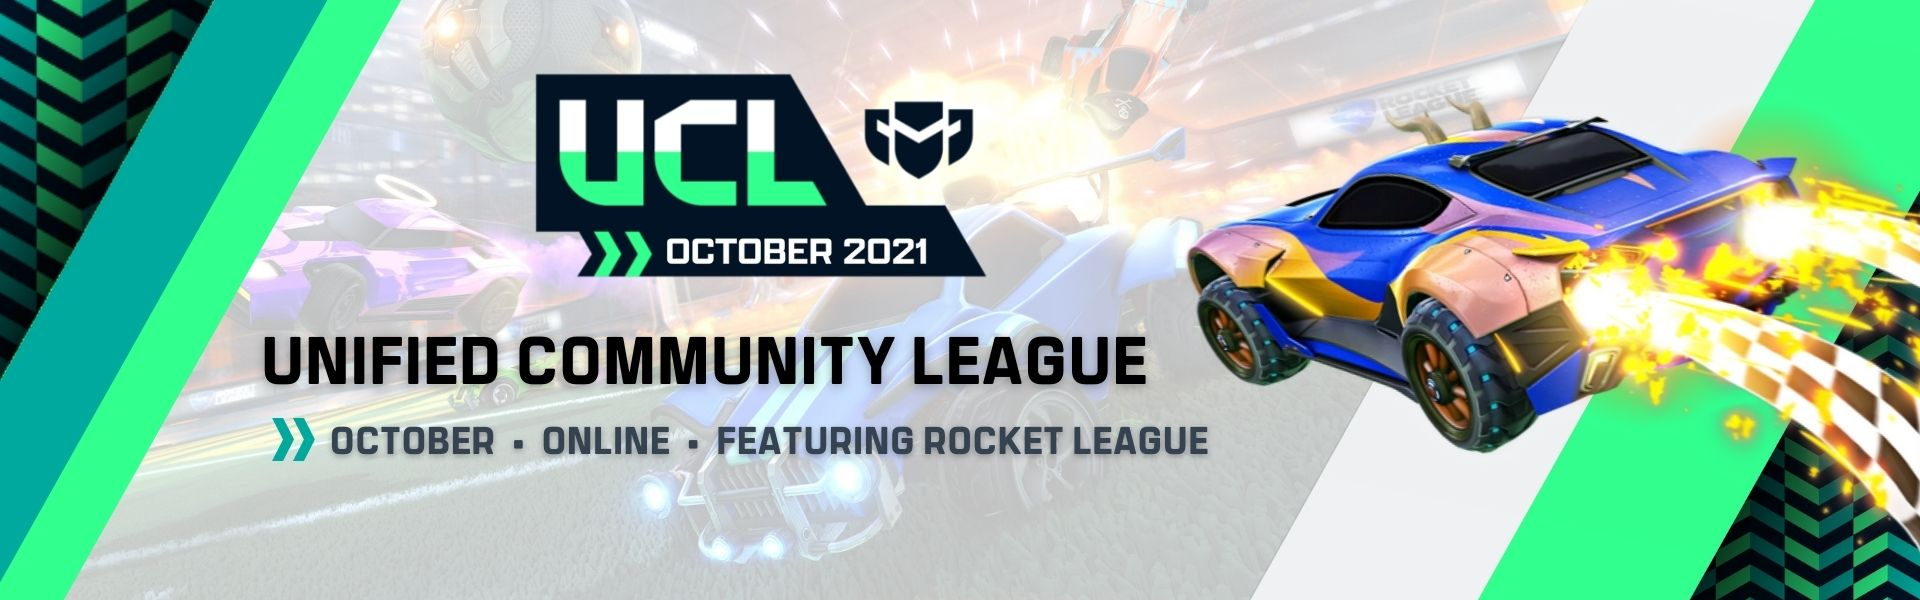 October UCL: Featuring Rocket League